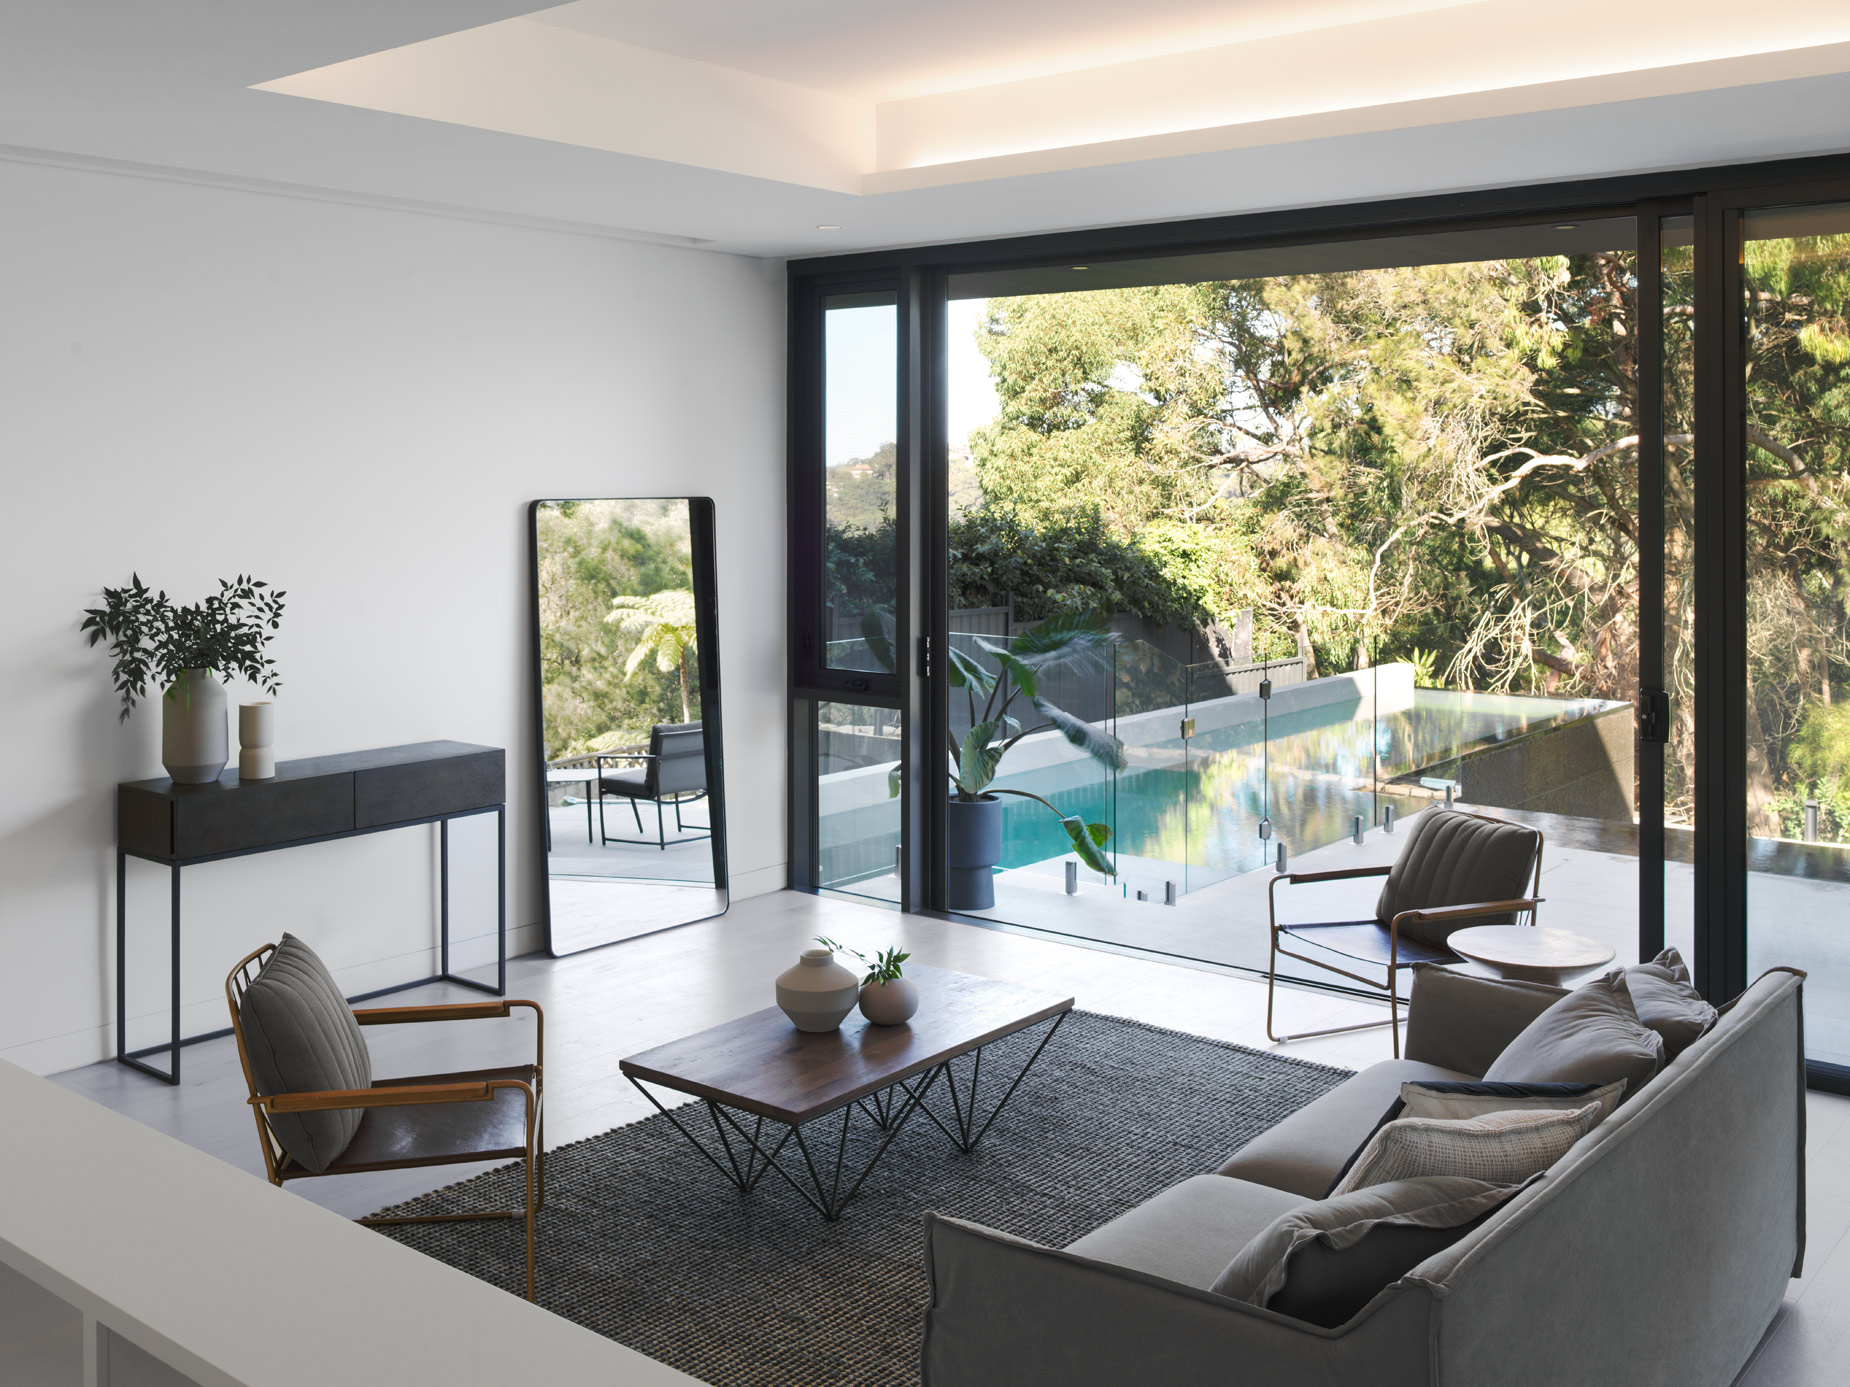 luke-butterly-2020-Cove-Cove-House-by-Dieppe-Design-Architecture-Sydney-NSW-18